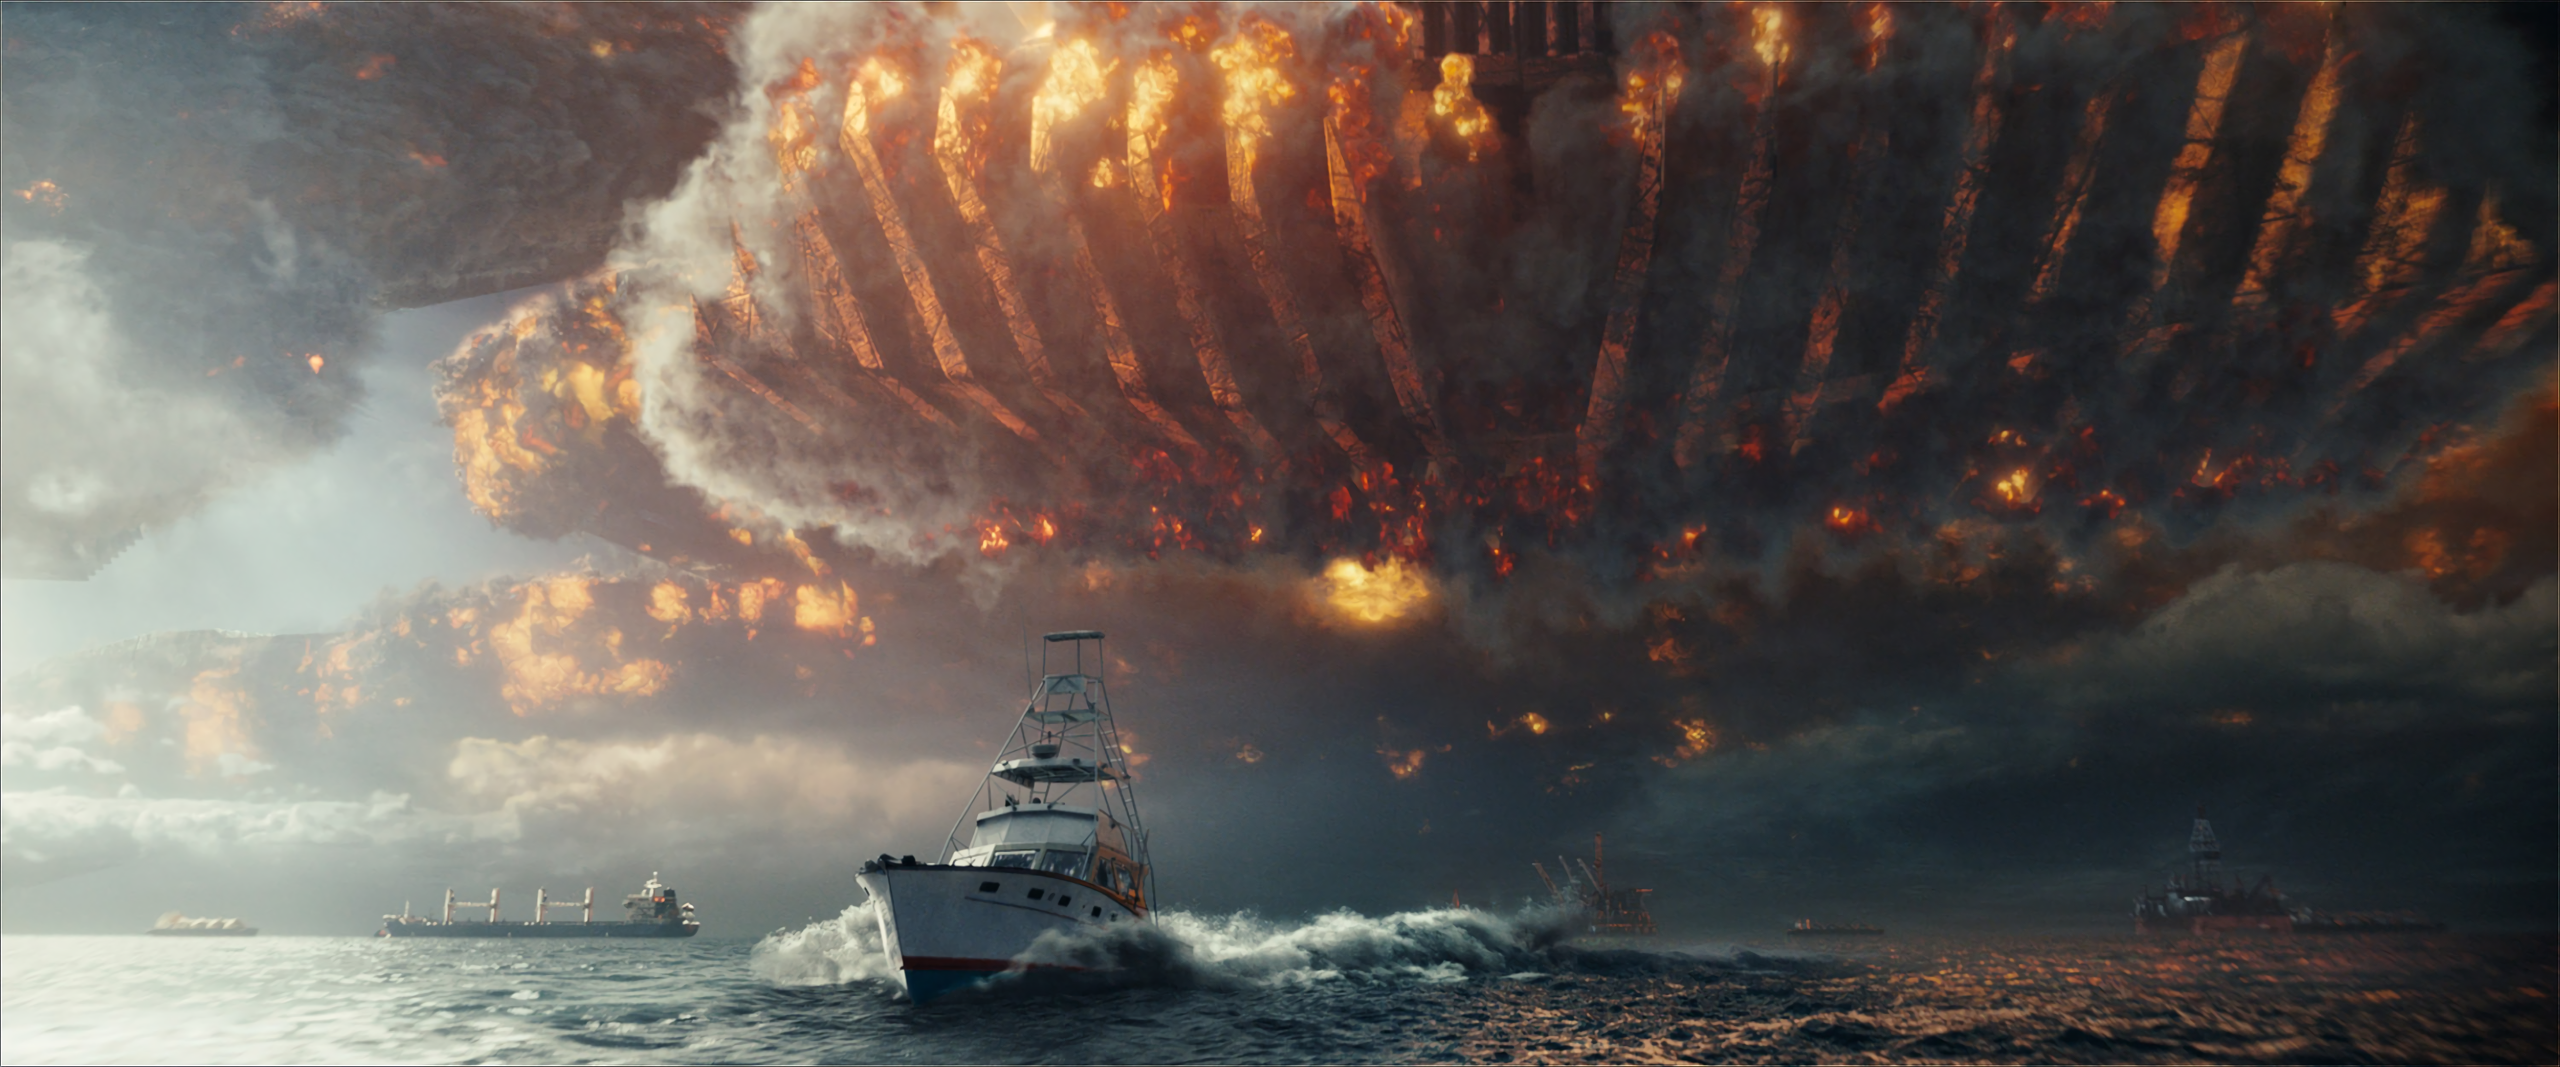 Independence Day Resurgence Wallpaper and Background Image 2560x1067